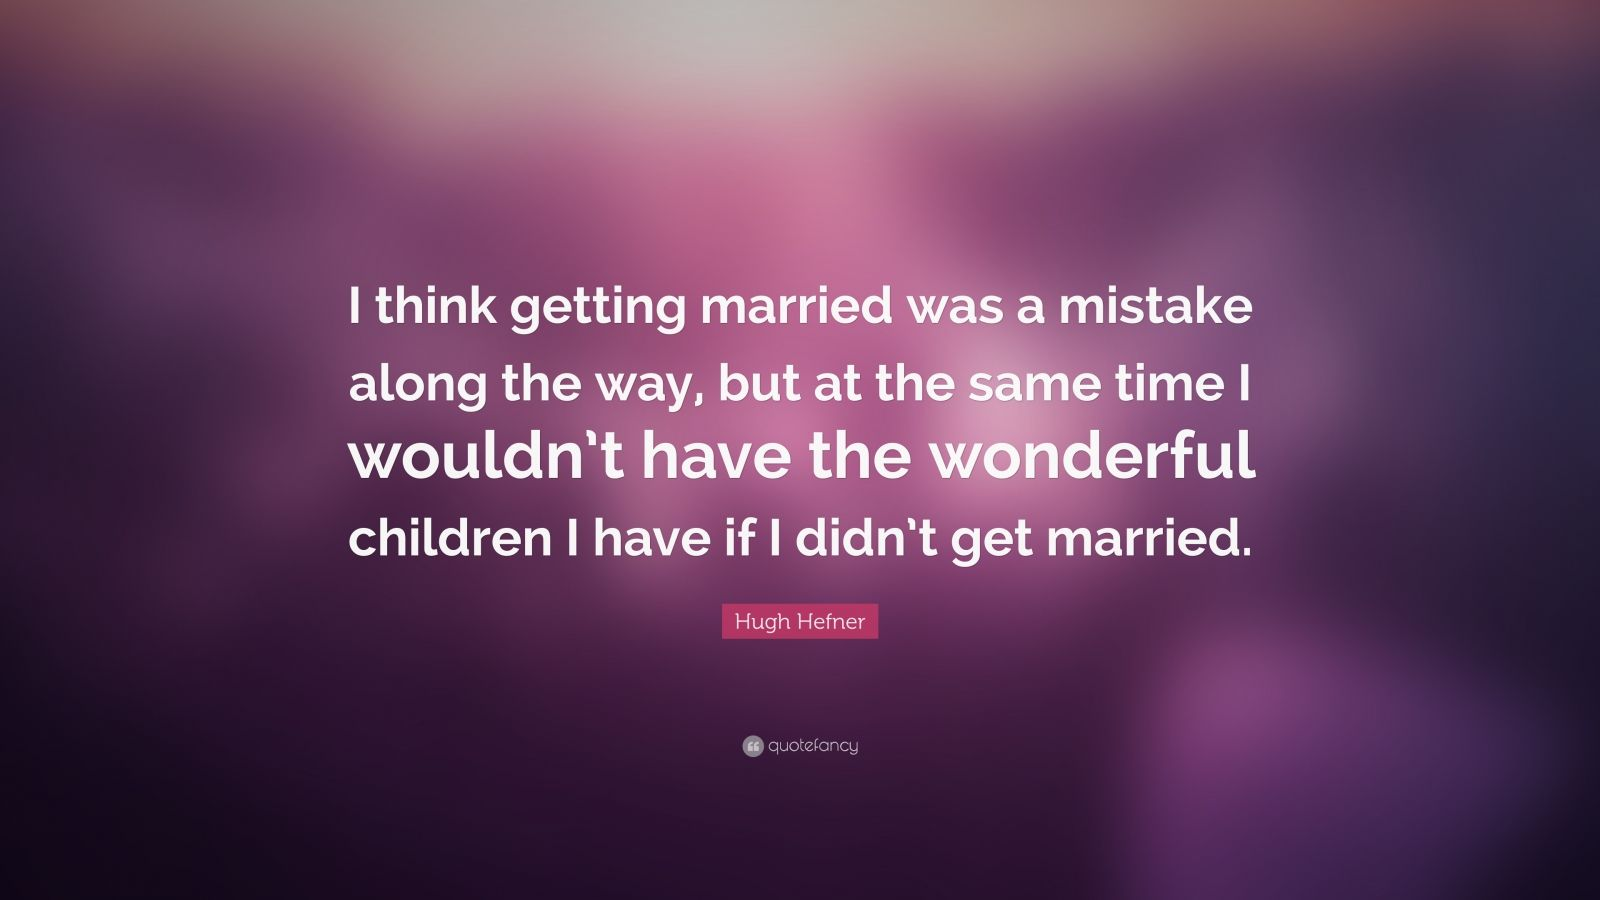 """Hugh Hefner Quote: """"I think getting married was a mistake along the way, but at the same time I wouldn't have the wonderful children I have if I didn't get married."""""""